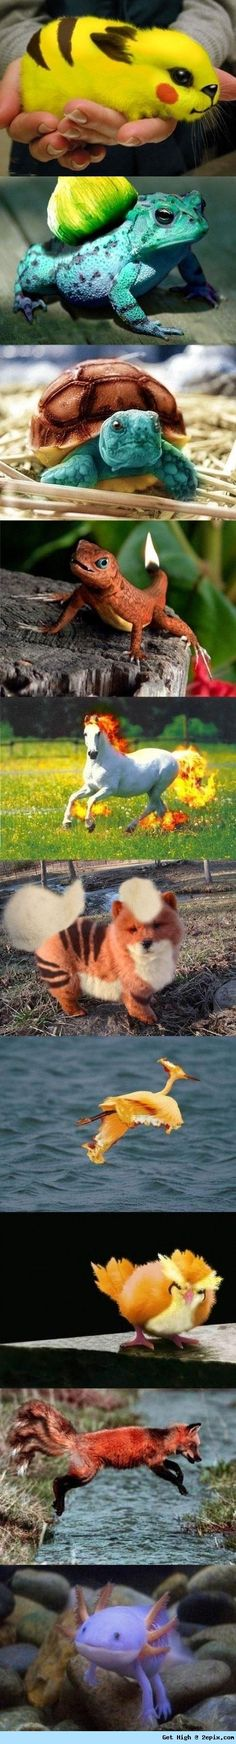 Pokemon in real life ^-^